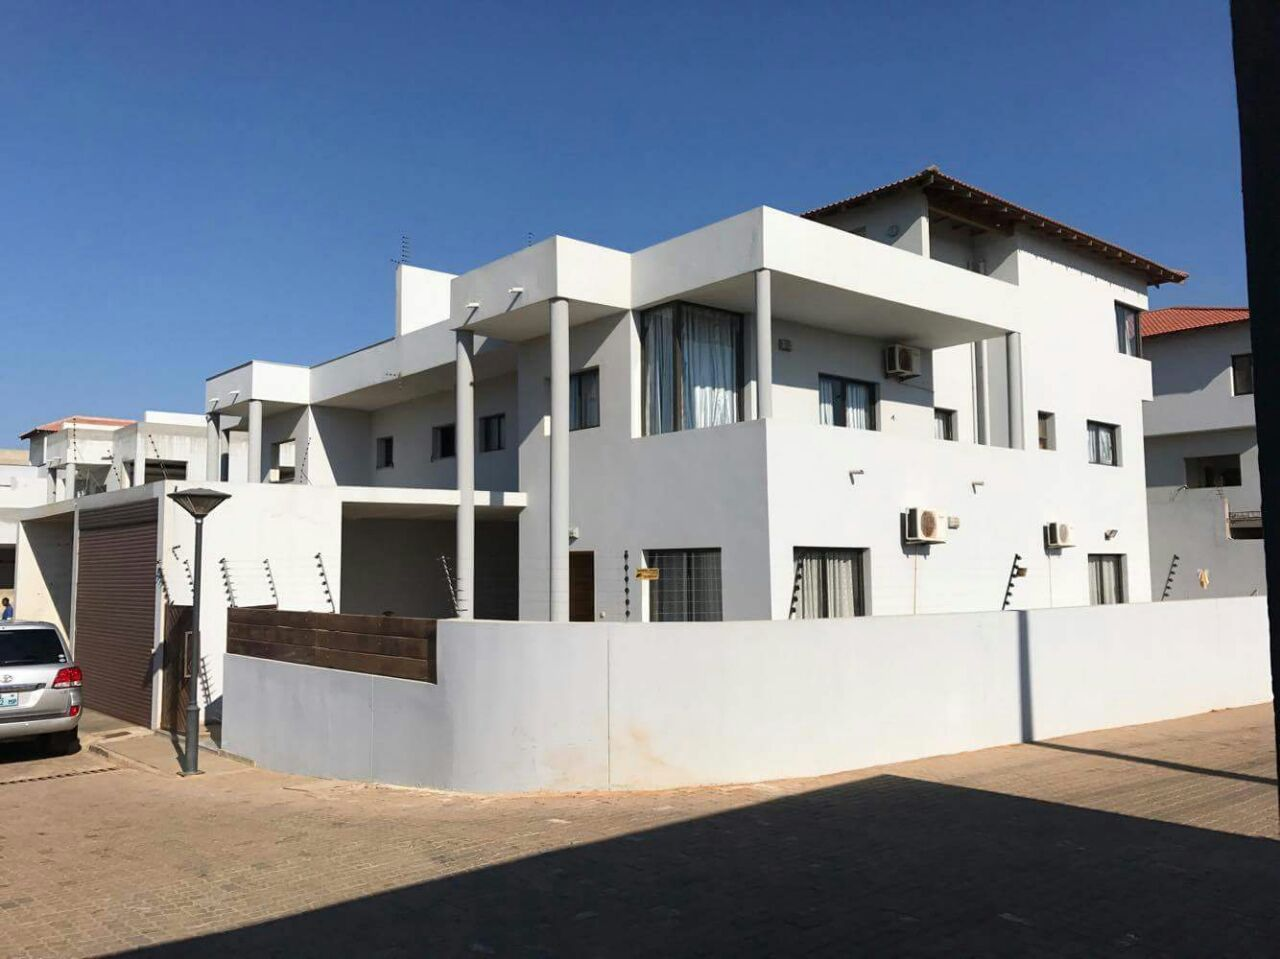 4 Bedroom House For Rent Situated In The Suburb Of Sommerschield 2